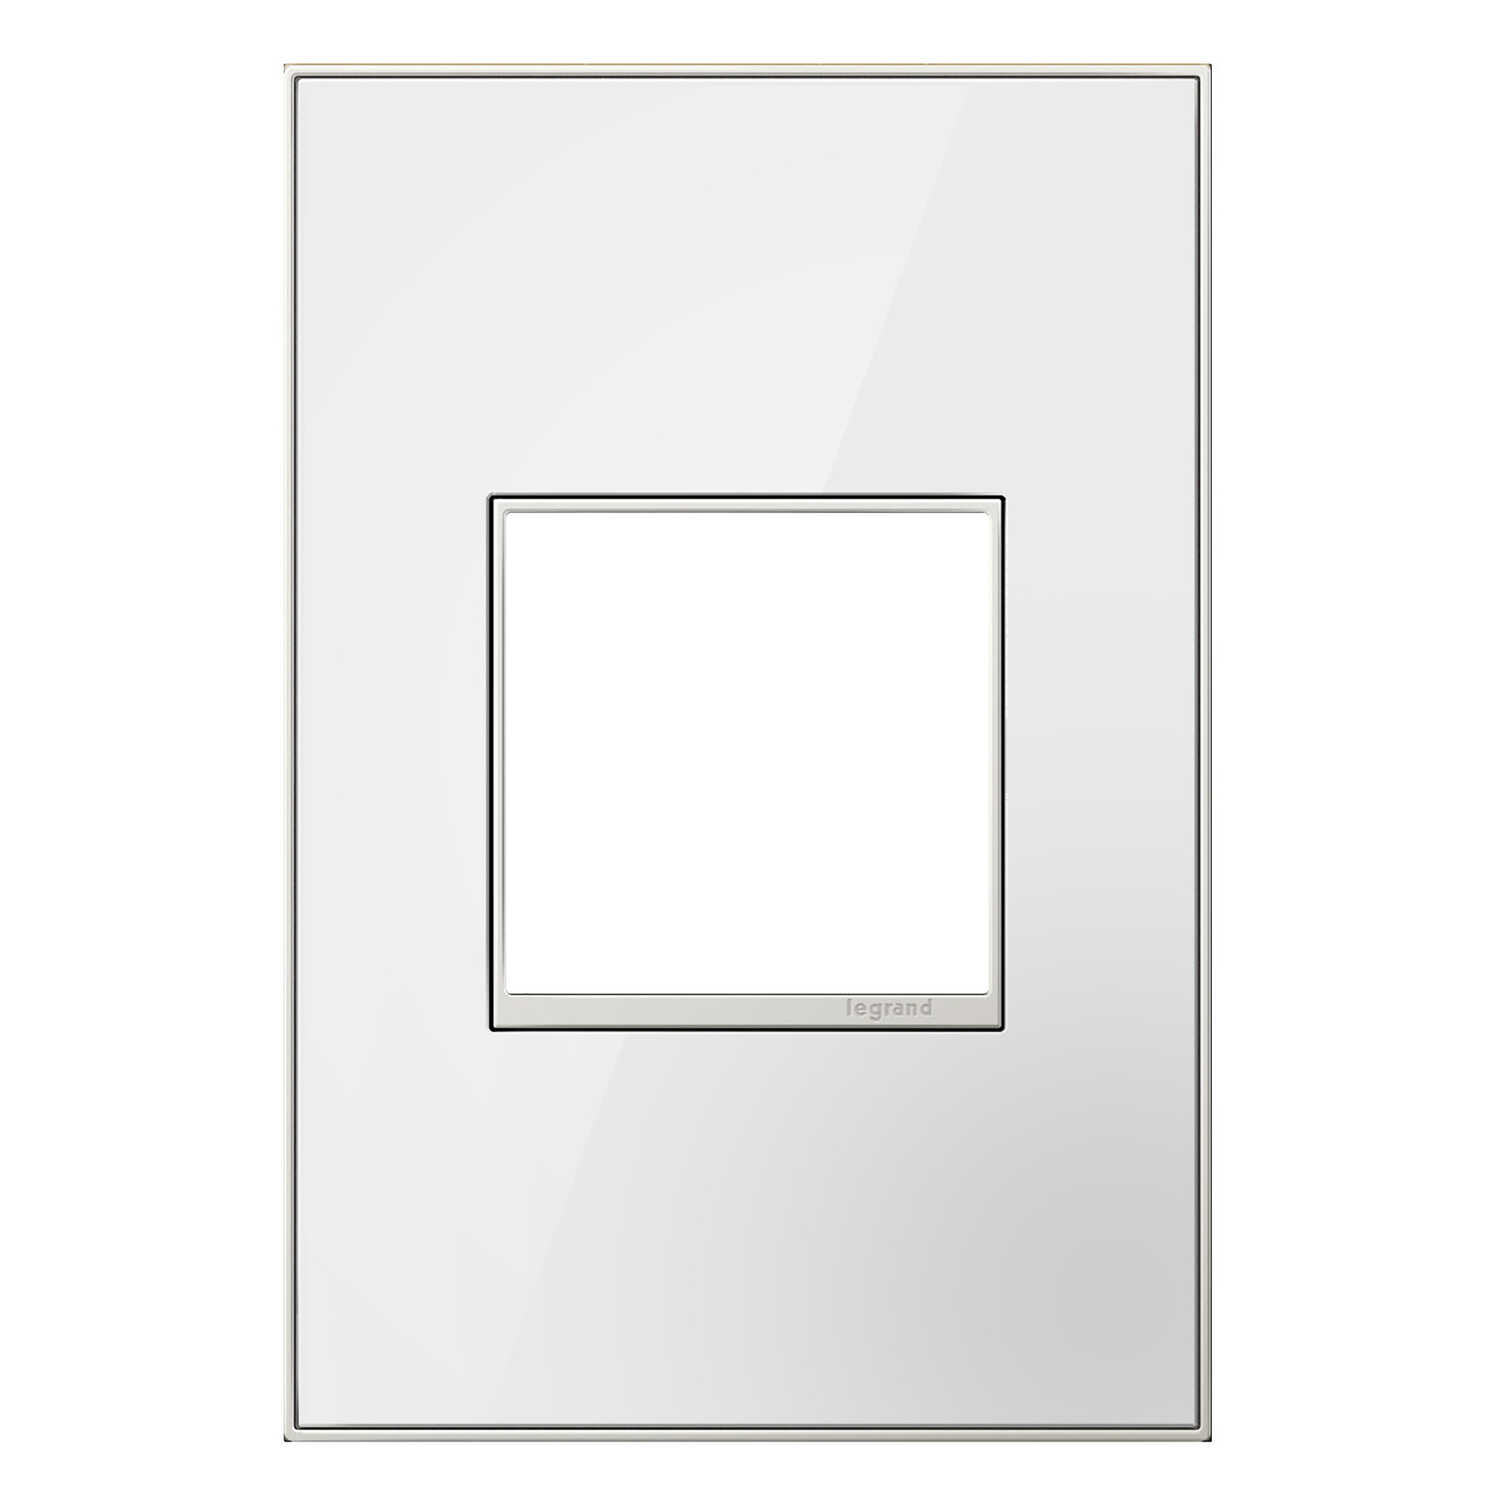 Legrand  Adorne  White  1 gang Thermoplastic Nylon  GFCI/Rocker  1 pk Wall Plate